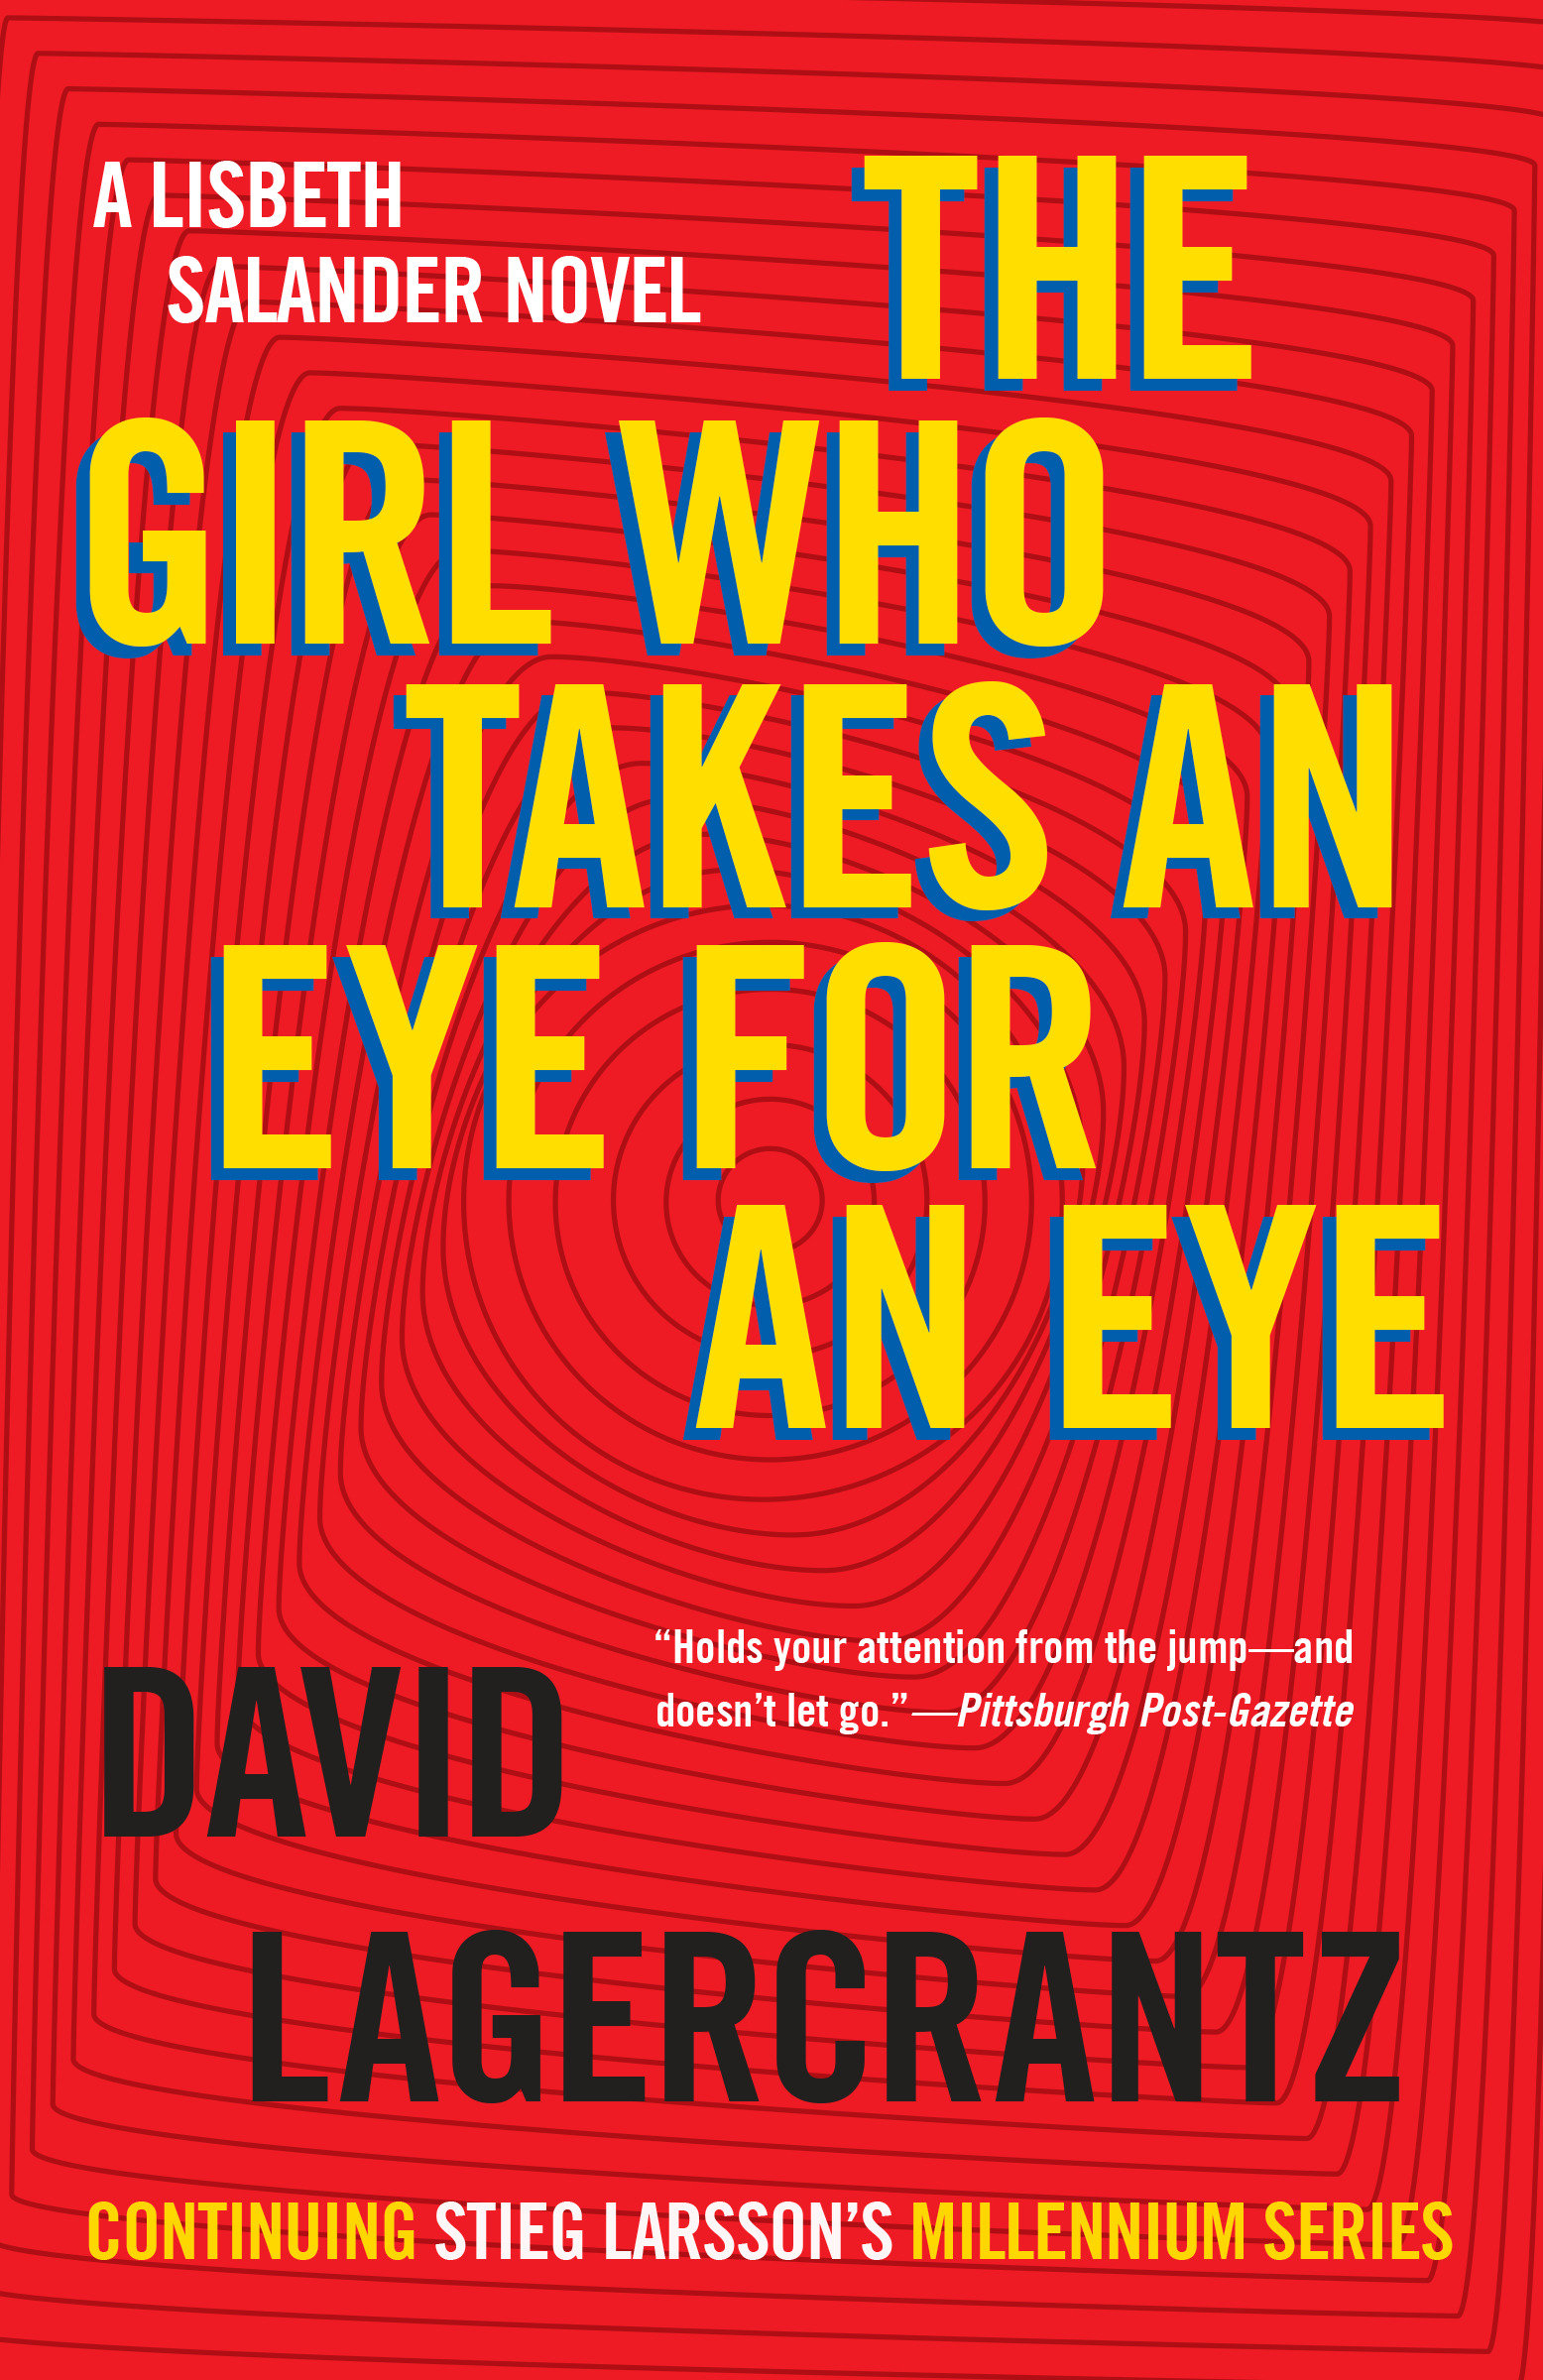 The Girl Who Takes an Eye for an Eye A Lisbeth Salander novel, continuing Stieg Larsson's Millennium Series